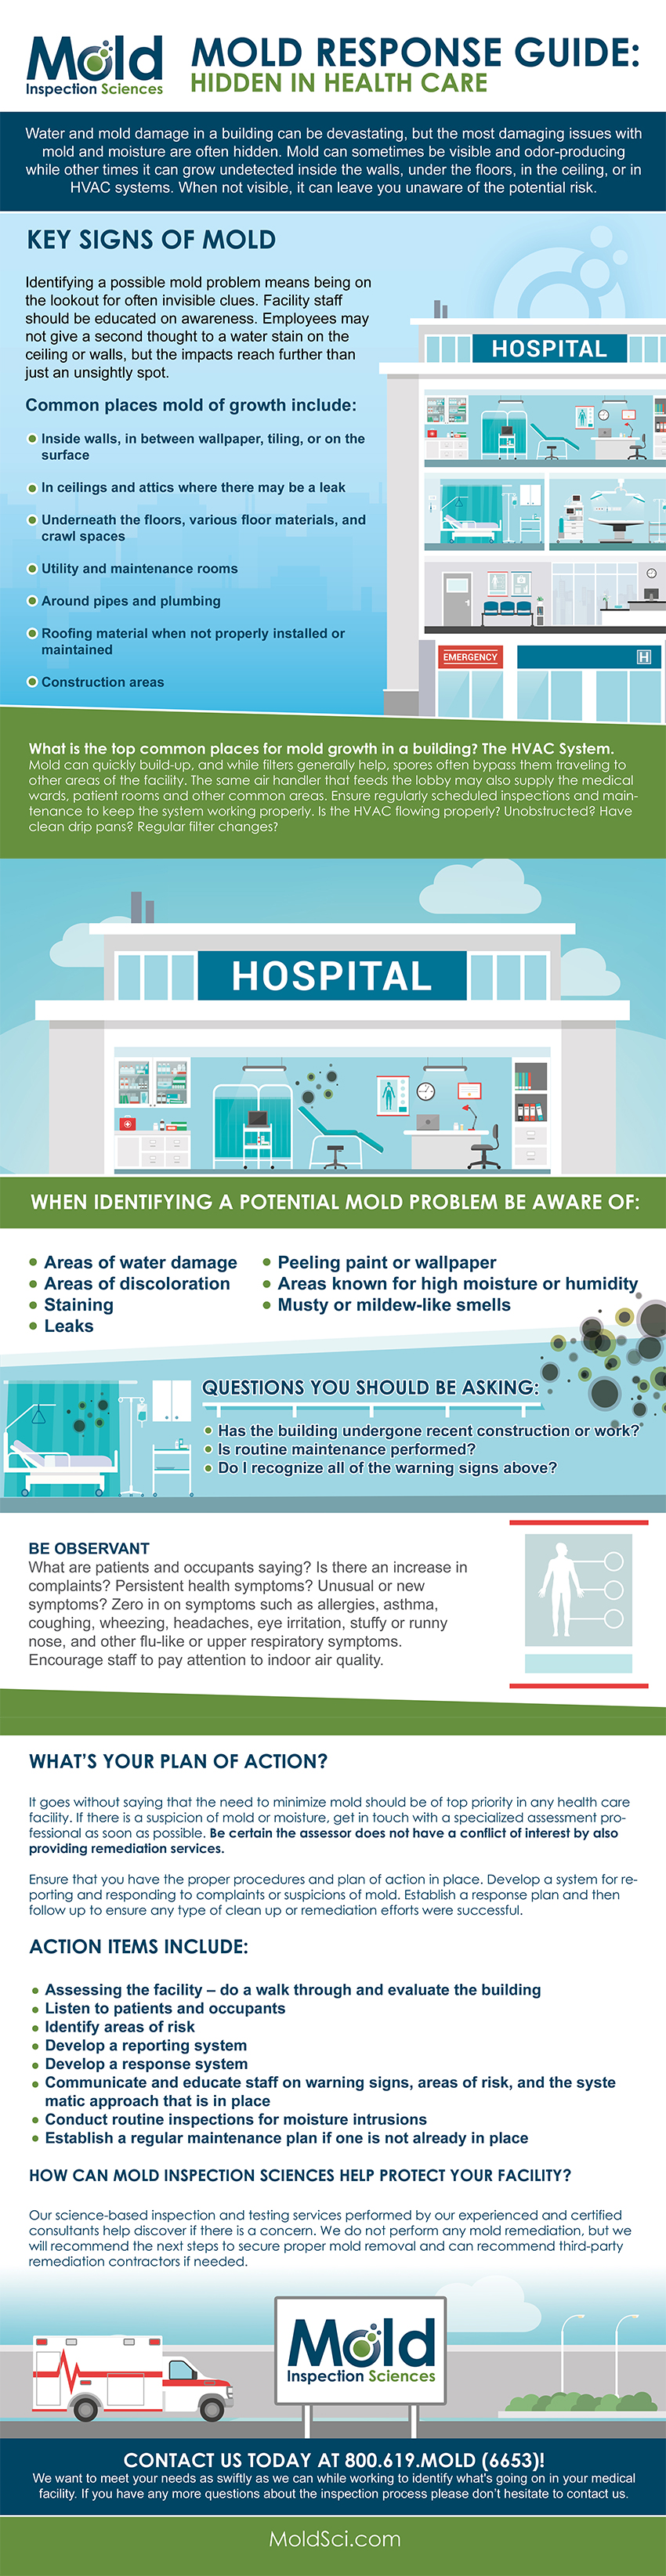 Mold Response Guide for Medical Facilities